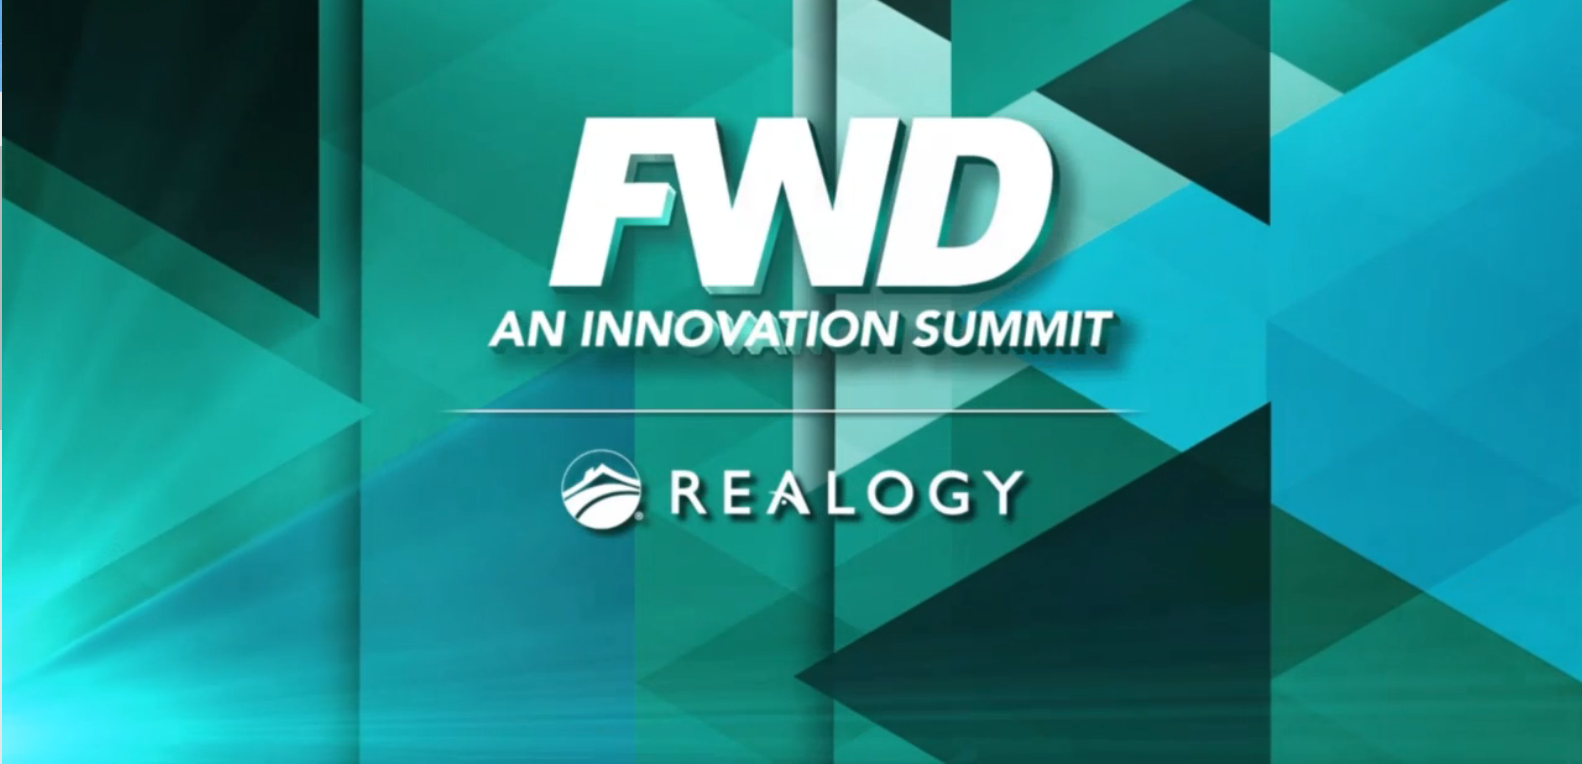 FWD_Innovation_Summit_2016